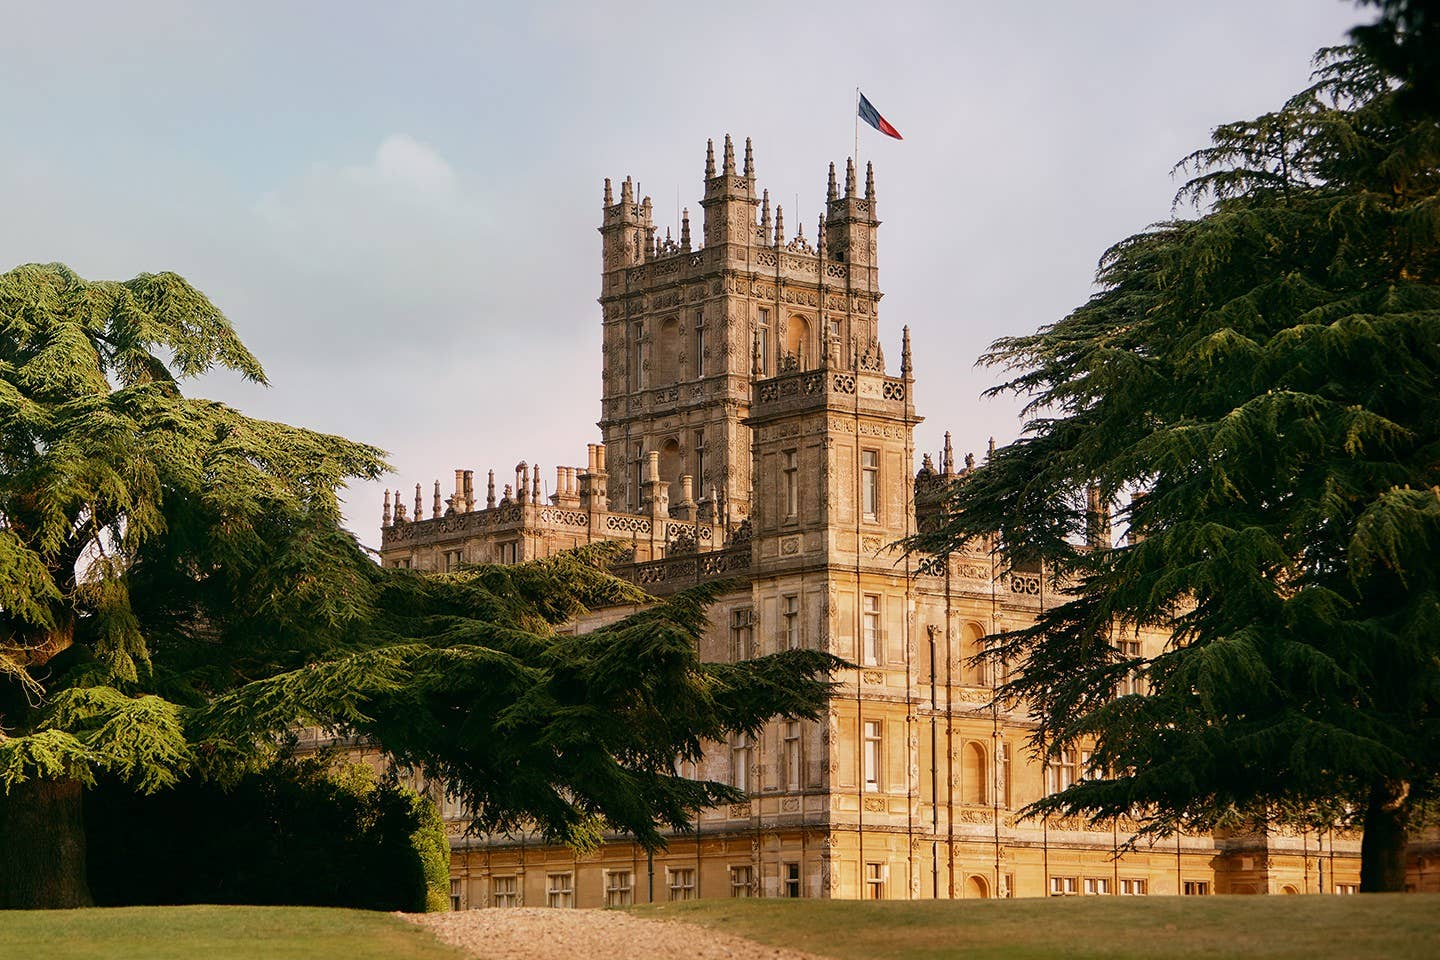 imagen 1 de Dormir en Highclere Castle, el castillo de Downton Abbey y el de Lord Carnarvon, mecenas de Howard Carter.